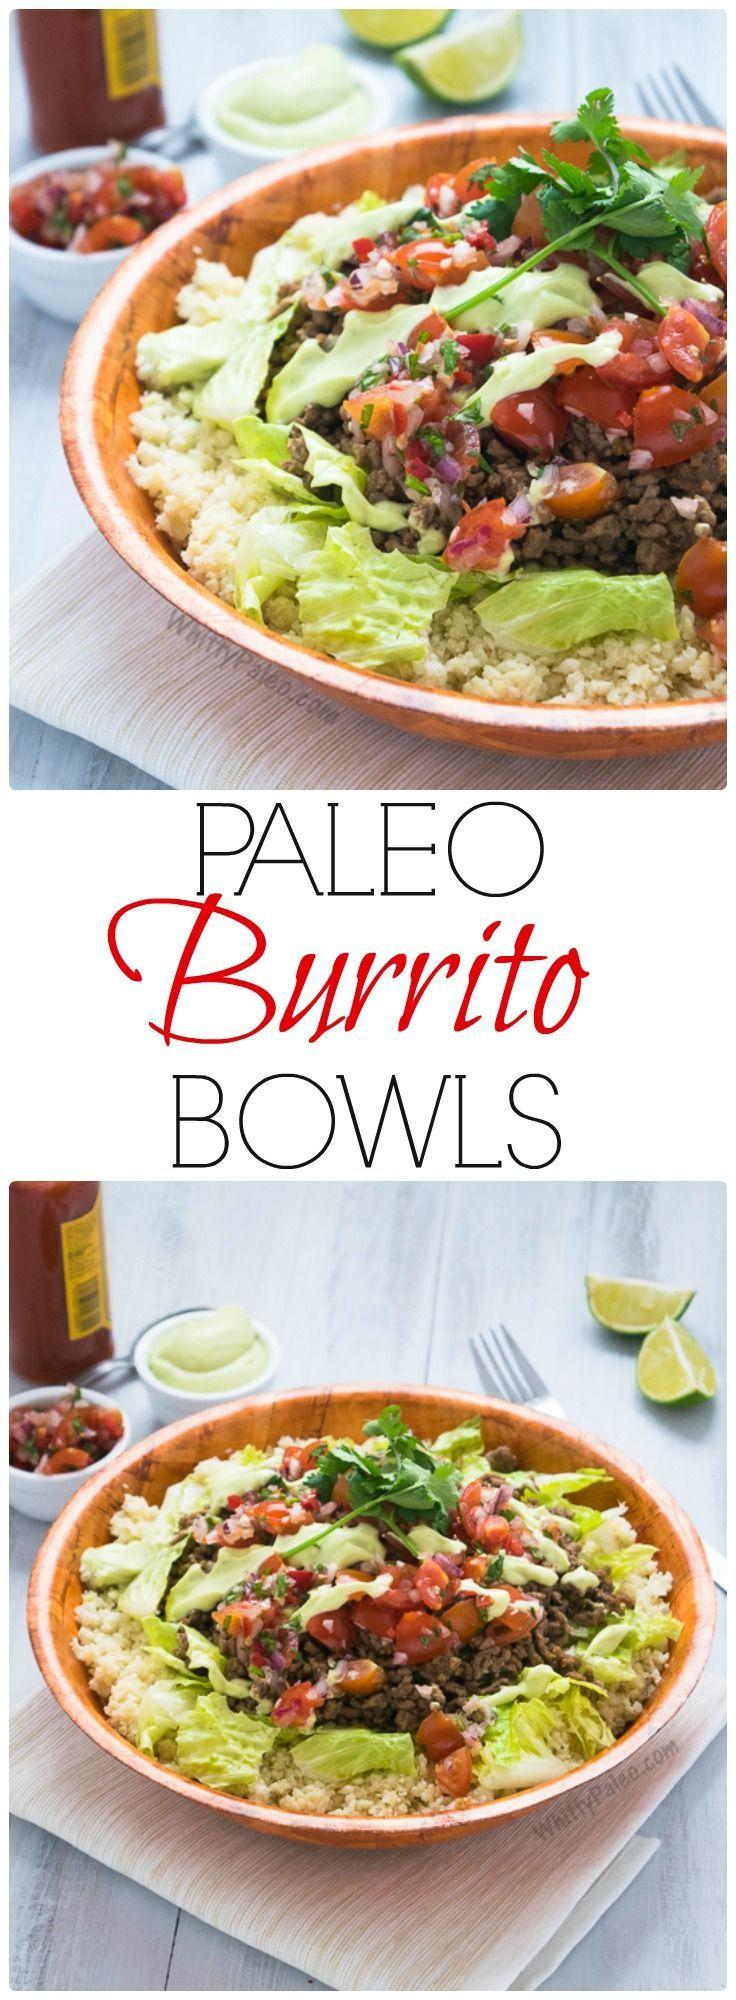 Paleo, Gluten Free & Dairy Free Easy Mexican Burrito Bowls from WhittyPaleo.com